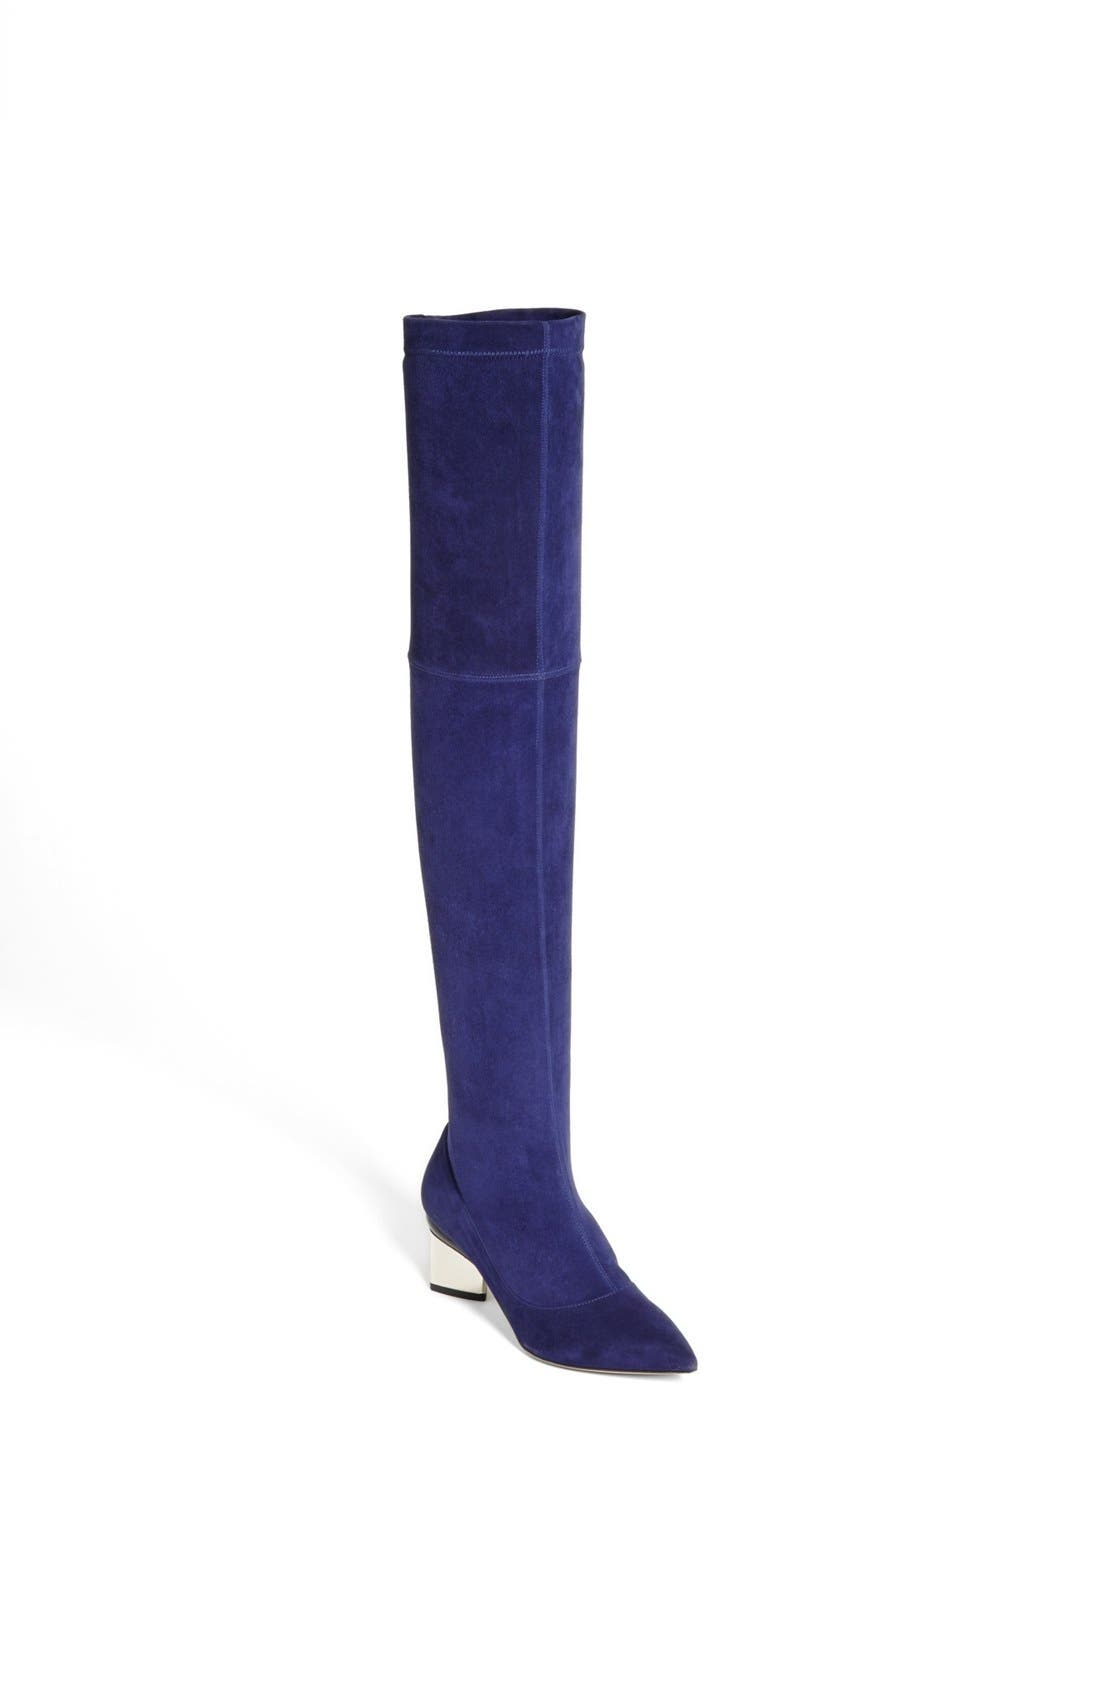 Alternate Image 1 Selected - Nicholas Kirkwood Suede Over the Knee Boot